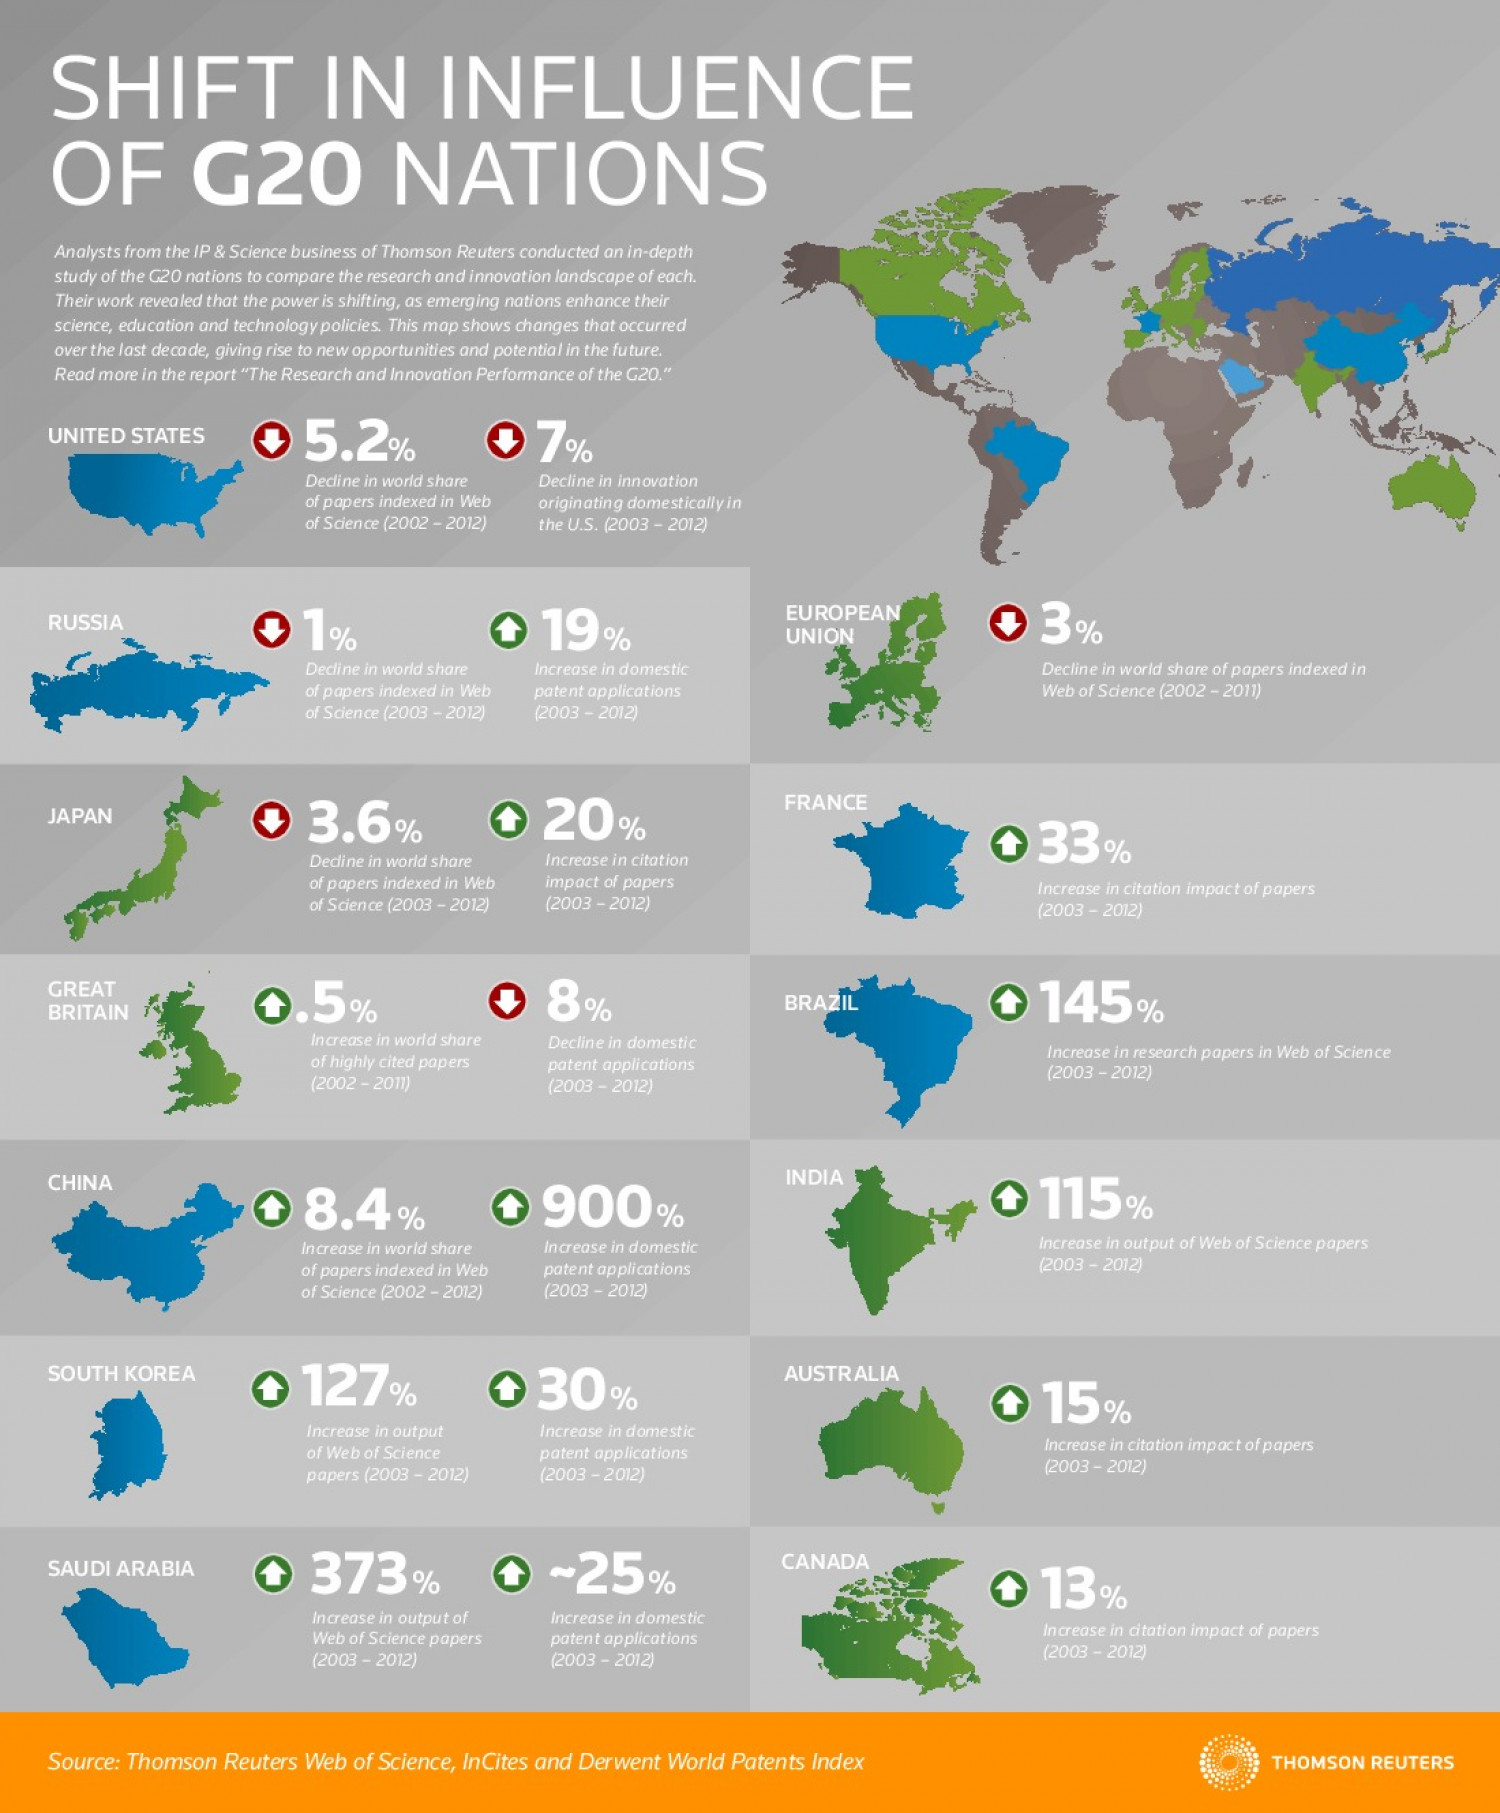 Shift in Influence of G20 Nations Infographic